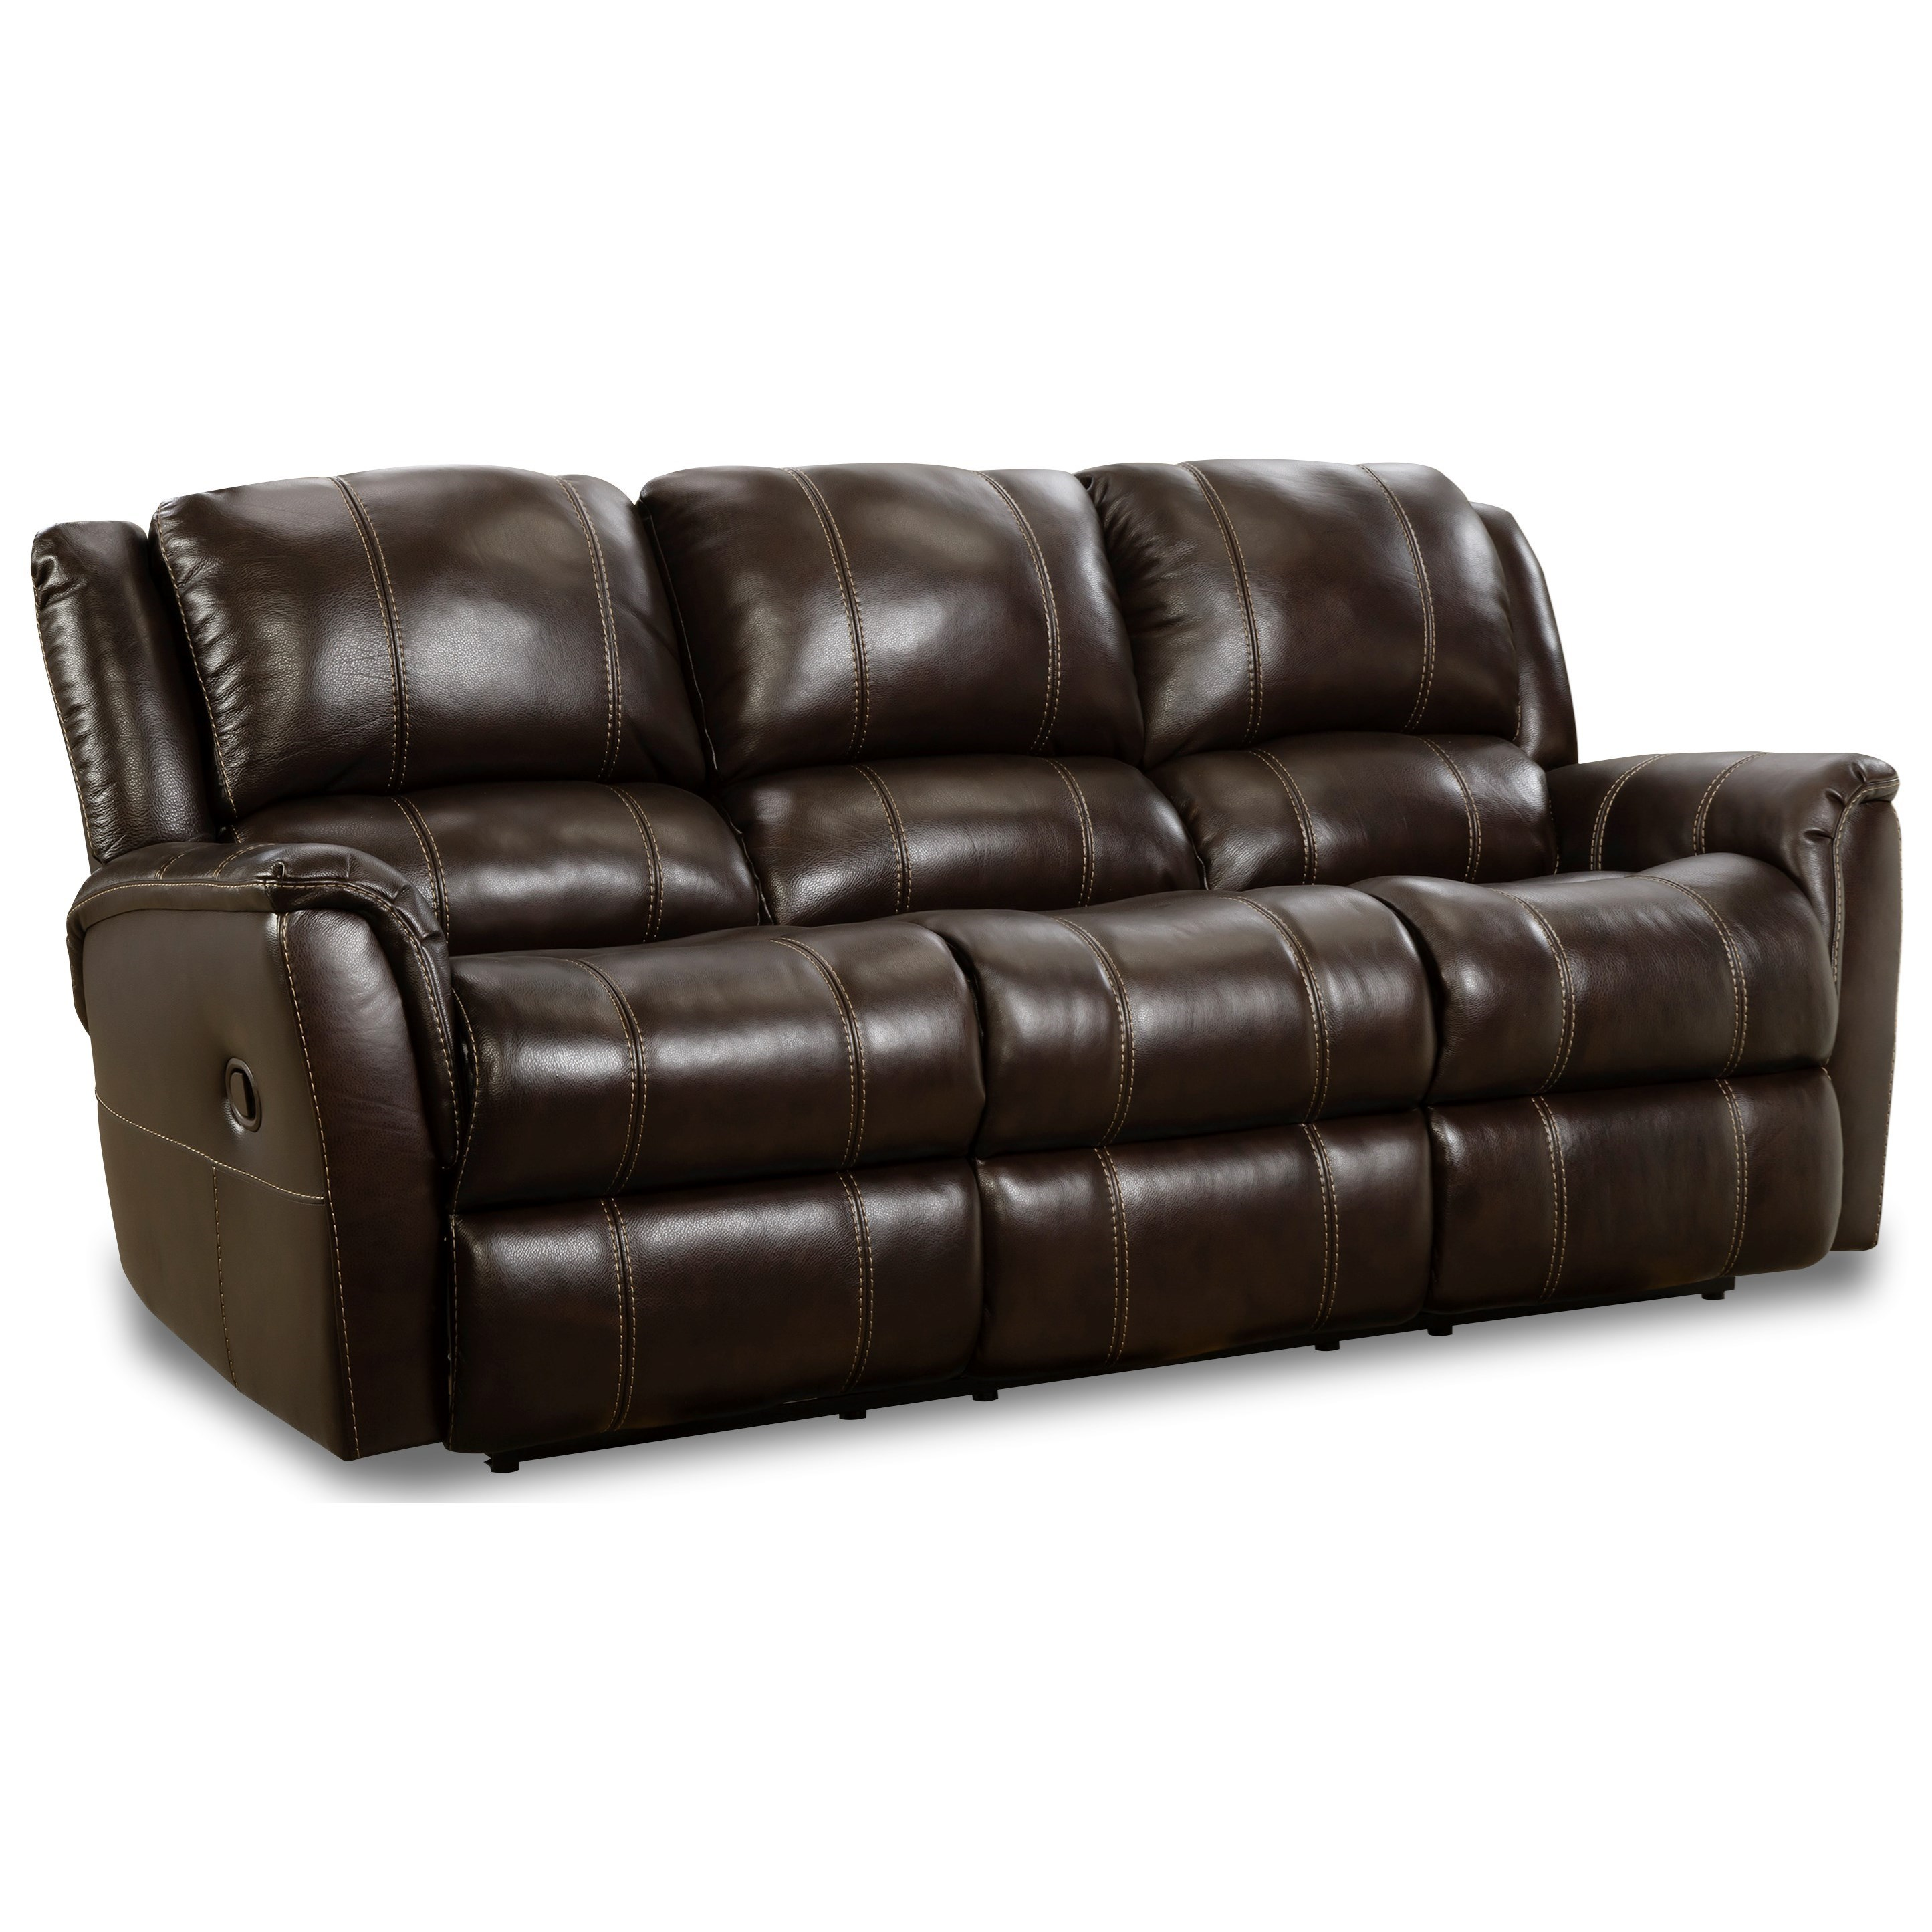 Mercury Double Reclining Sofa by HomeStretch at Van Hill Furniture